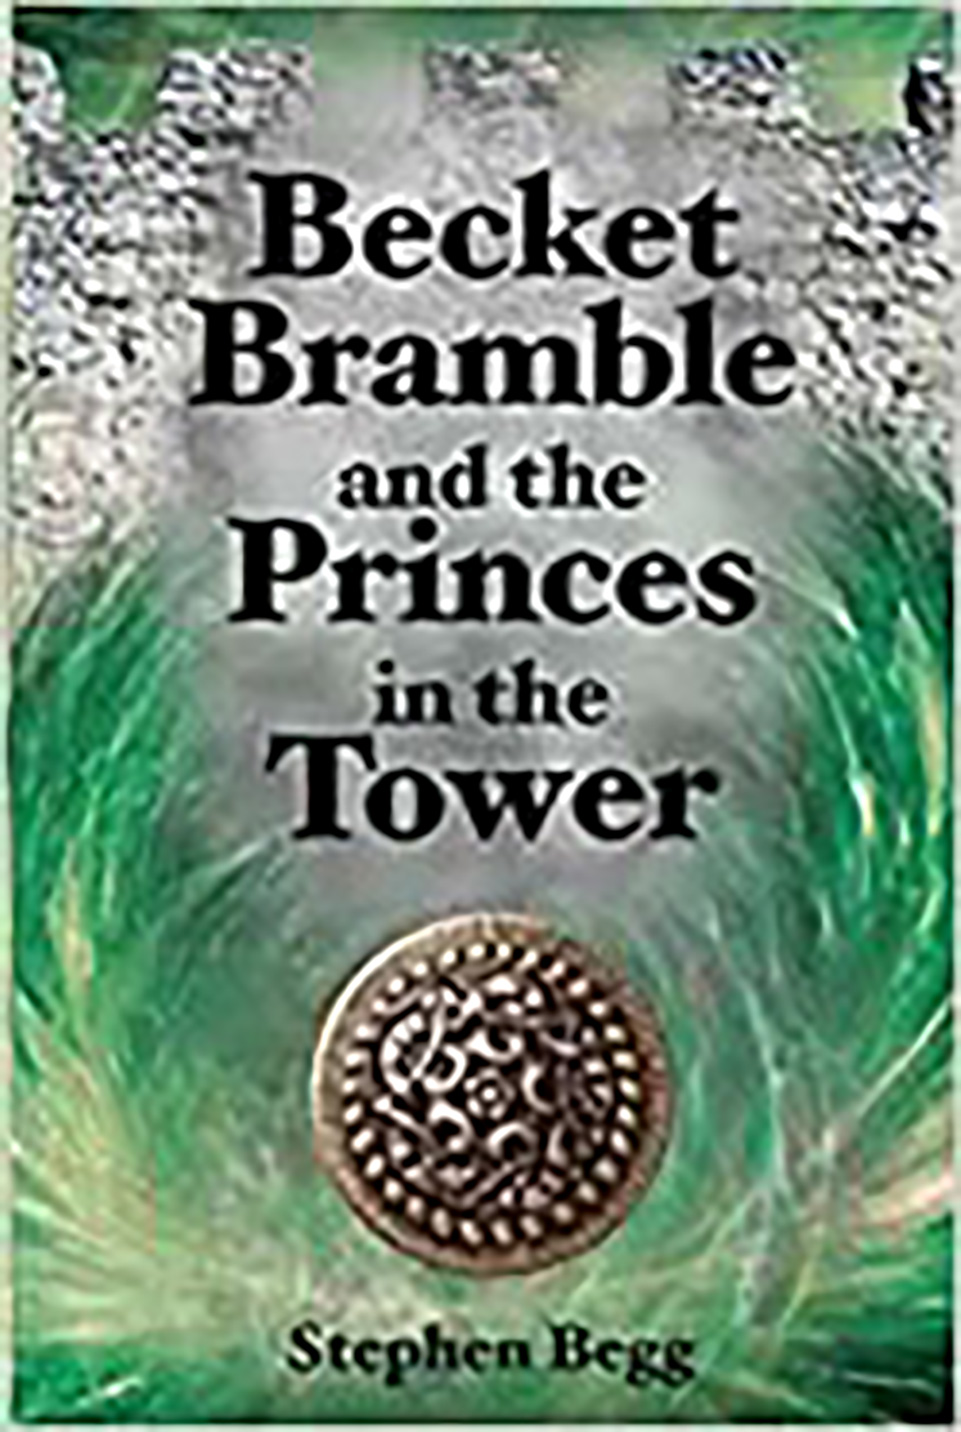 Front cover of a book: Becket Bramble and the Princes in the Tower by Stephen Begg